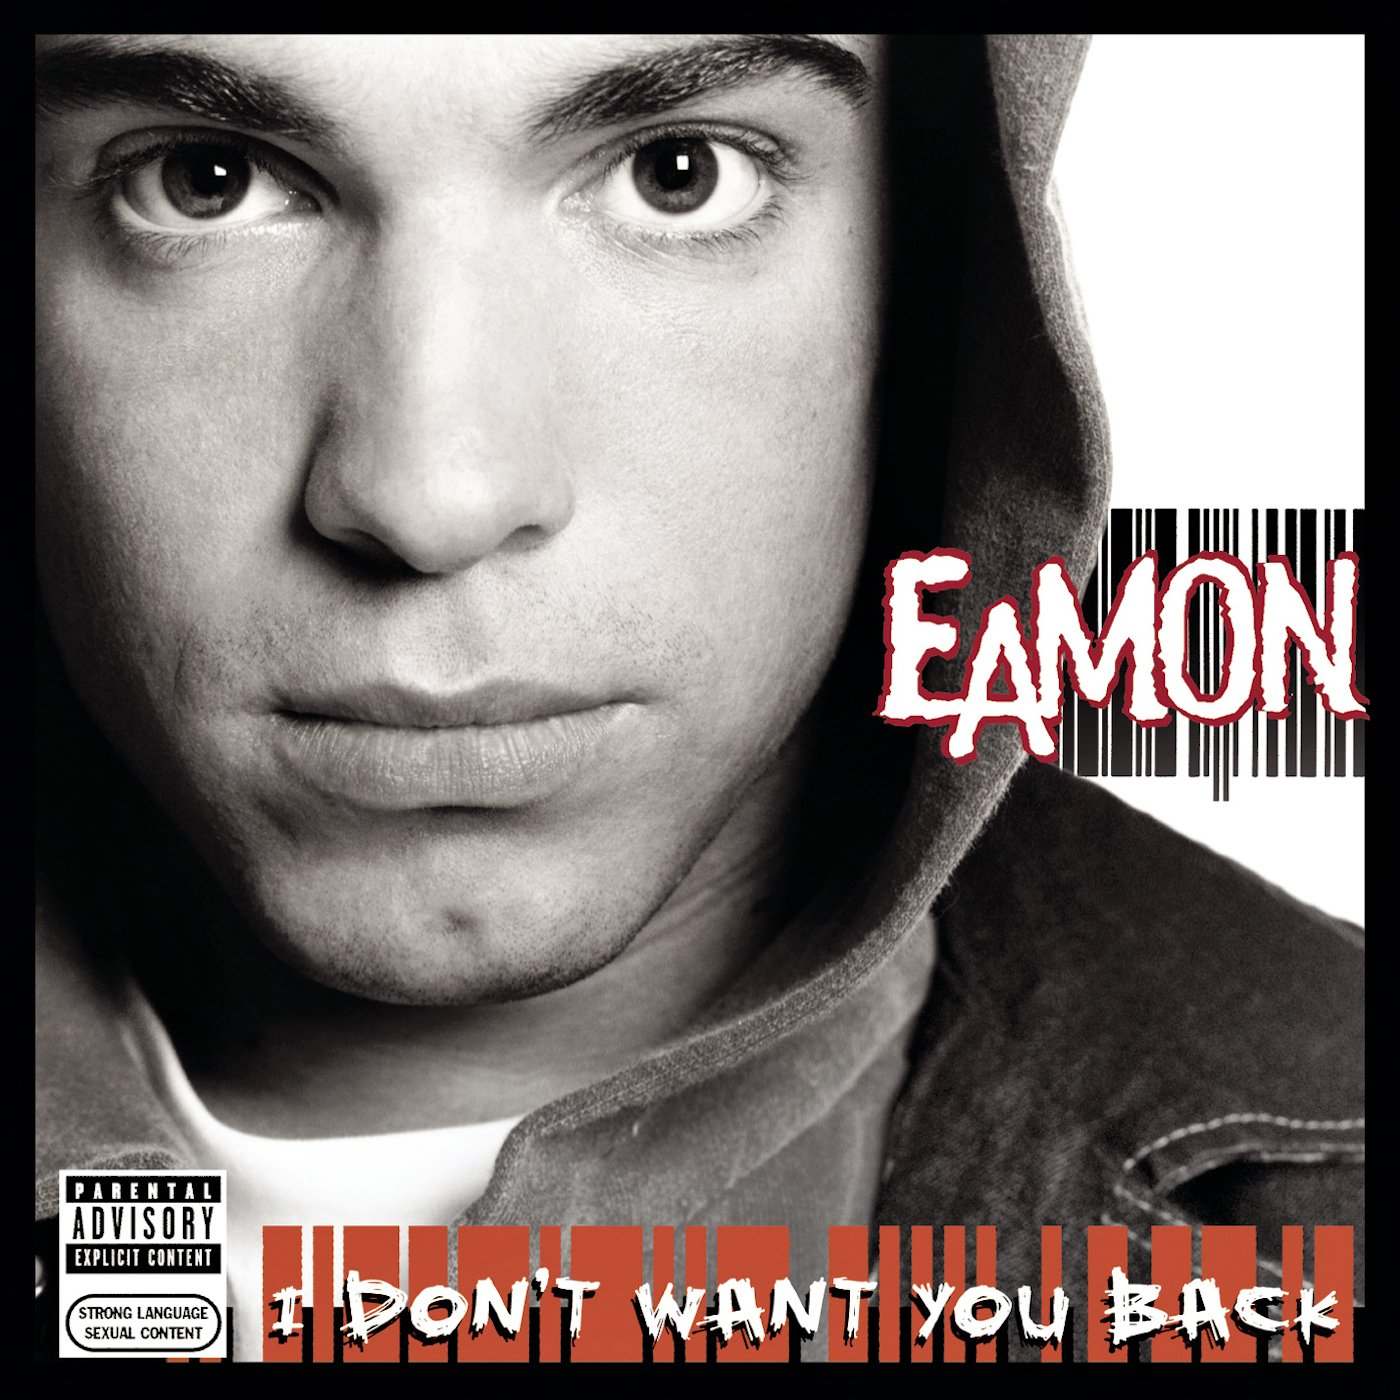 Eamon, I Don't Want You Back